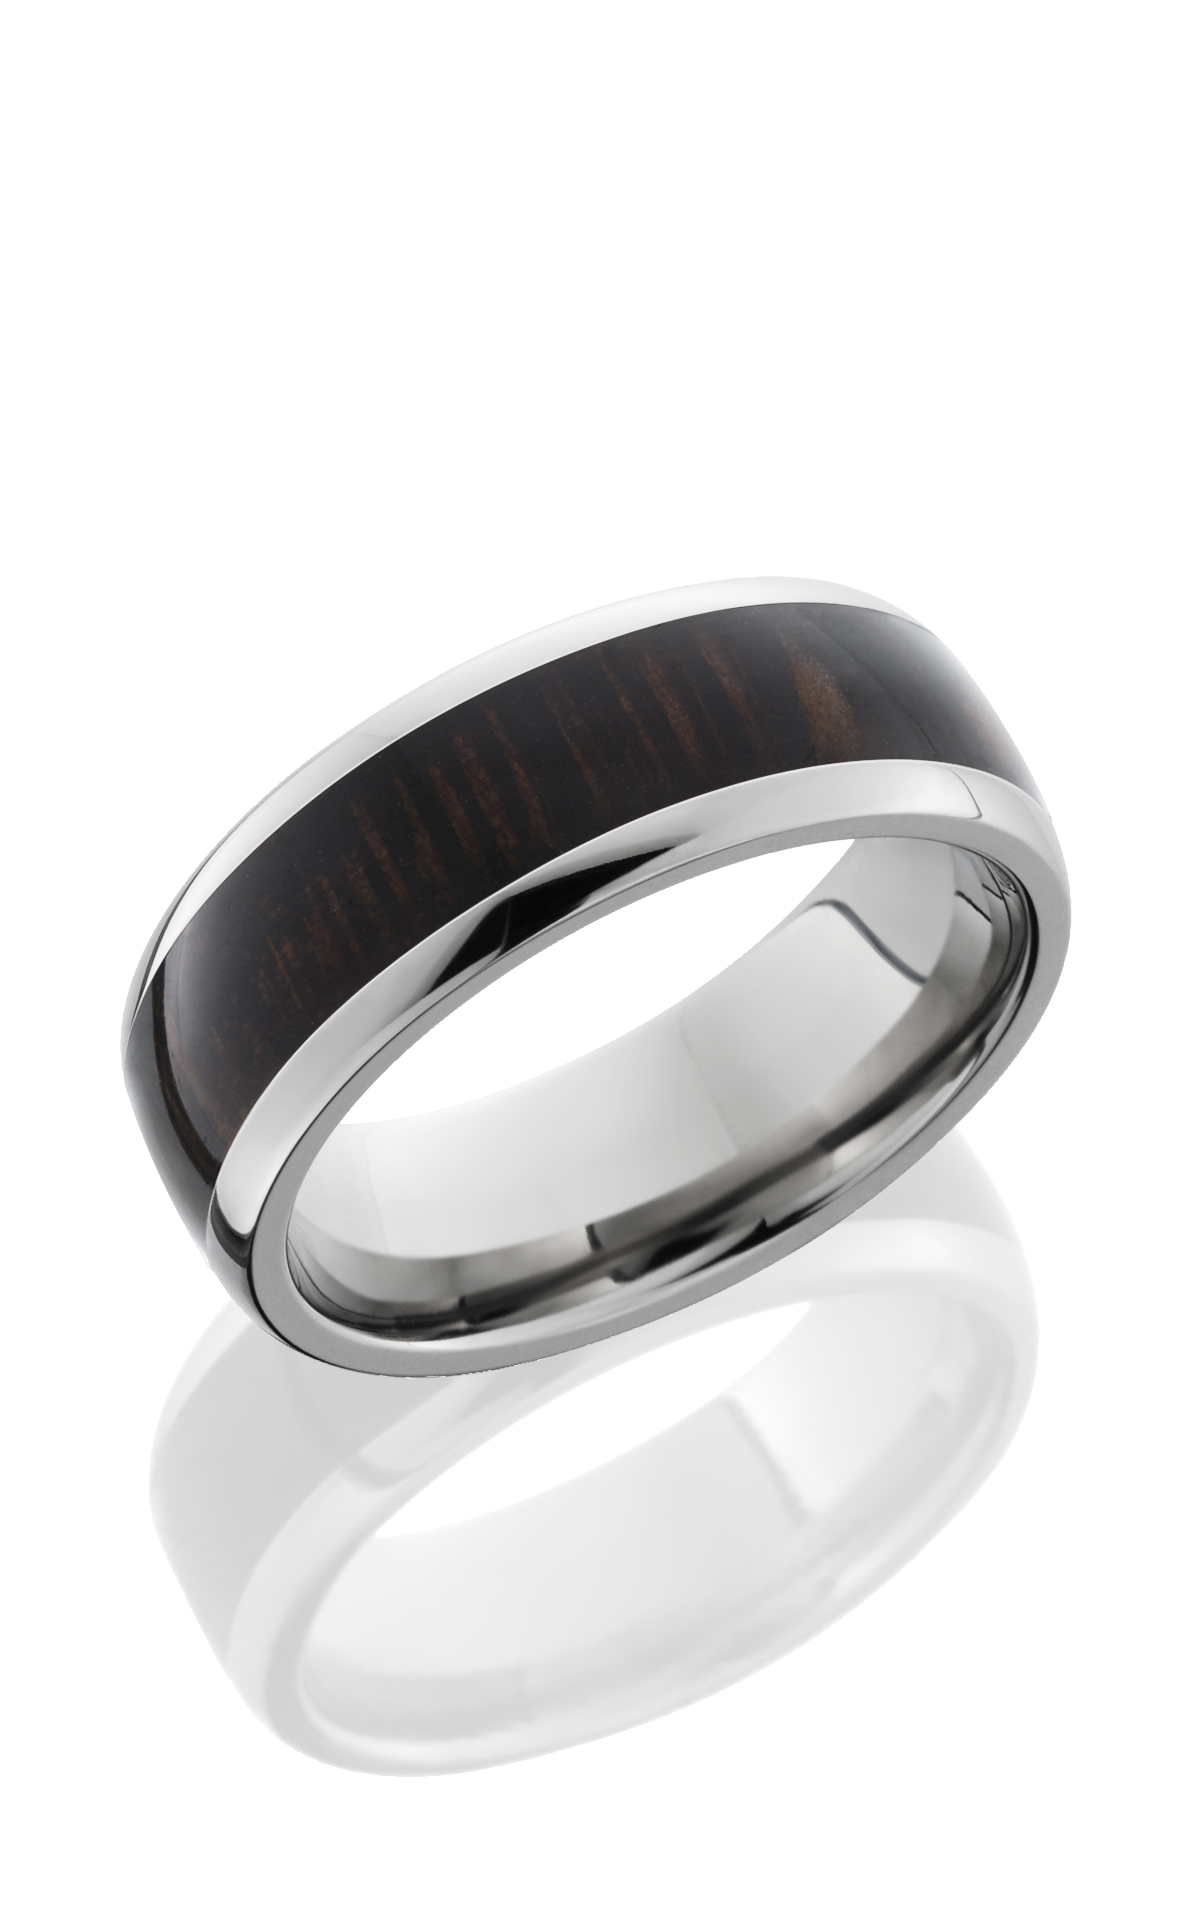 Lashbrook Hardwood Collection Wedding band 90106 product image